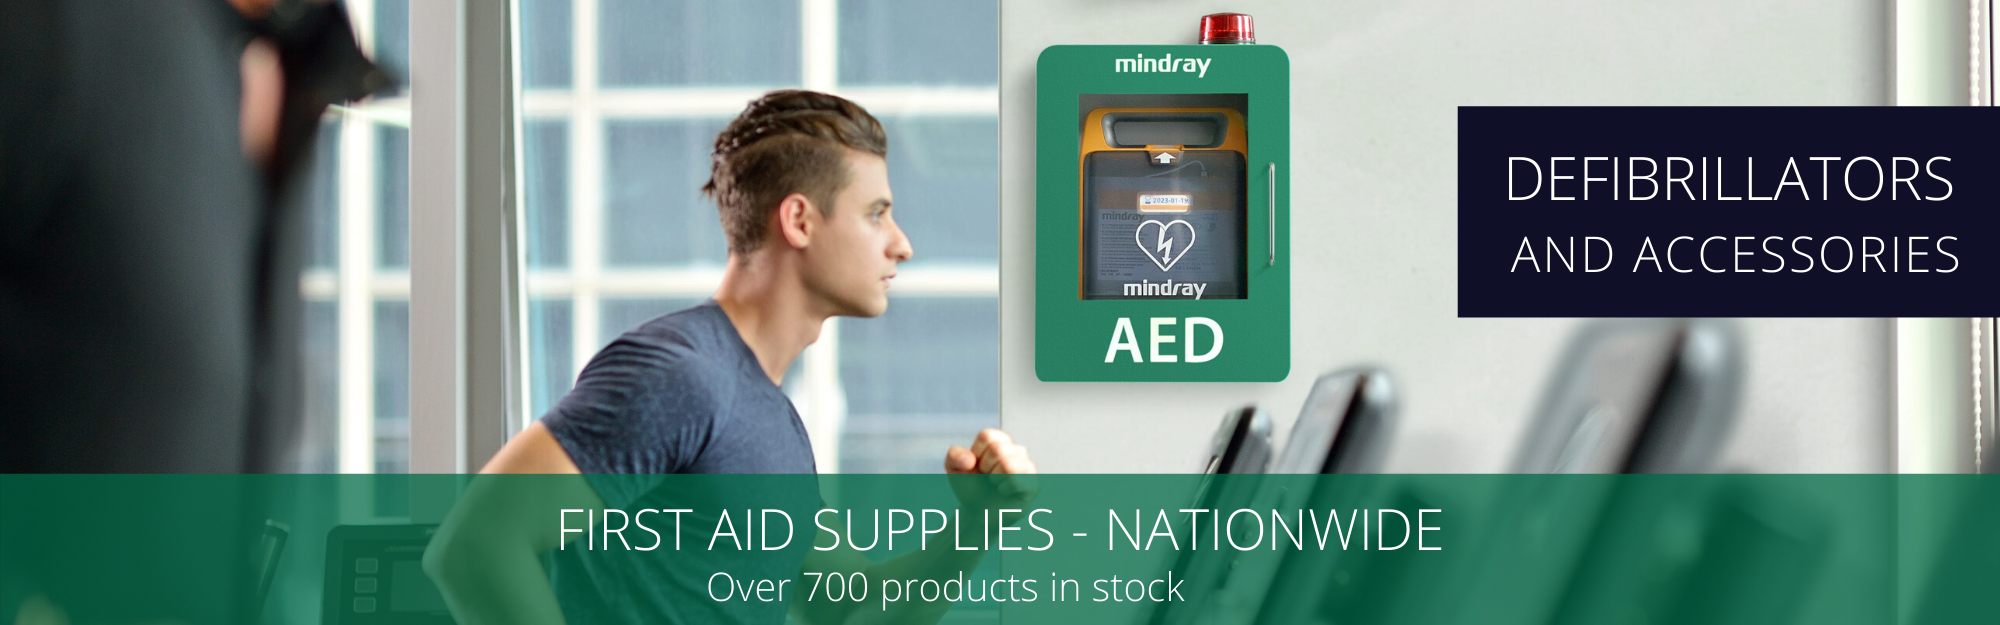 Defibrillators and AED's